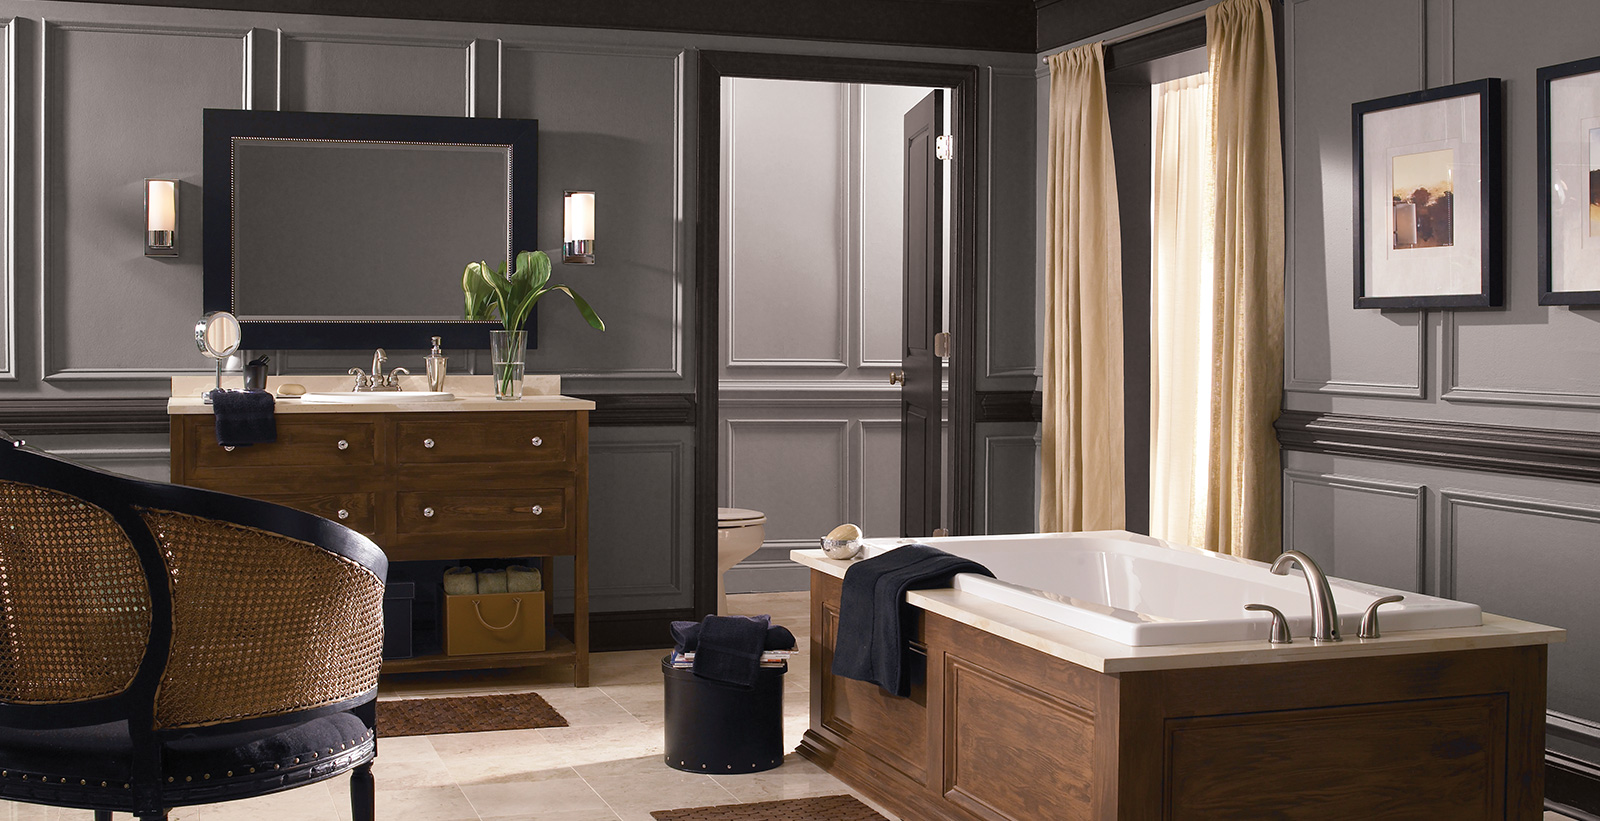 Classic styled bathroom with gray walls, brown trim, wooden vanity and rectangular mirror.